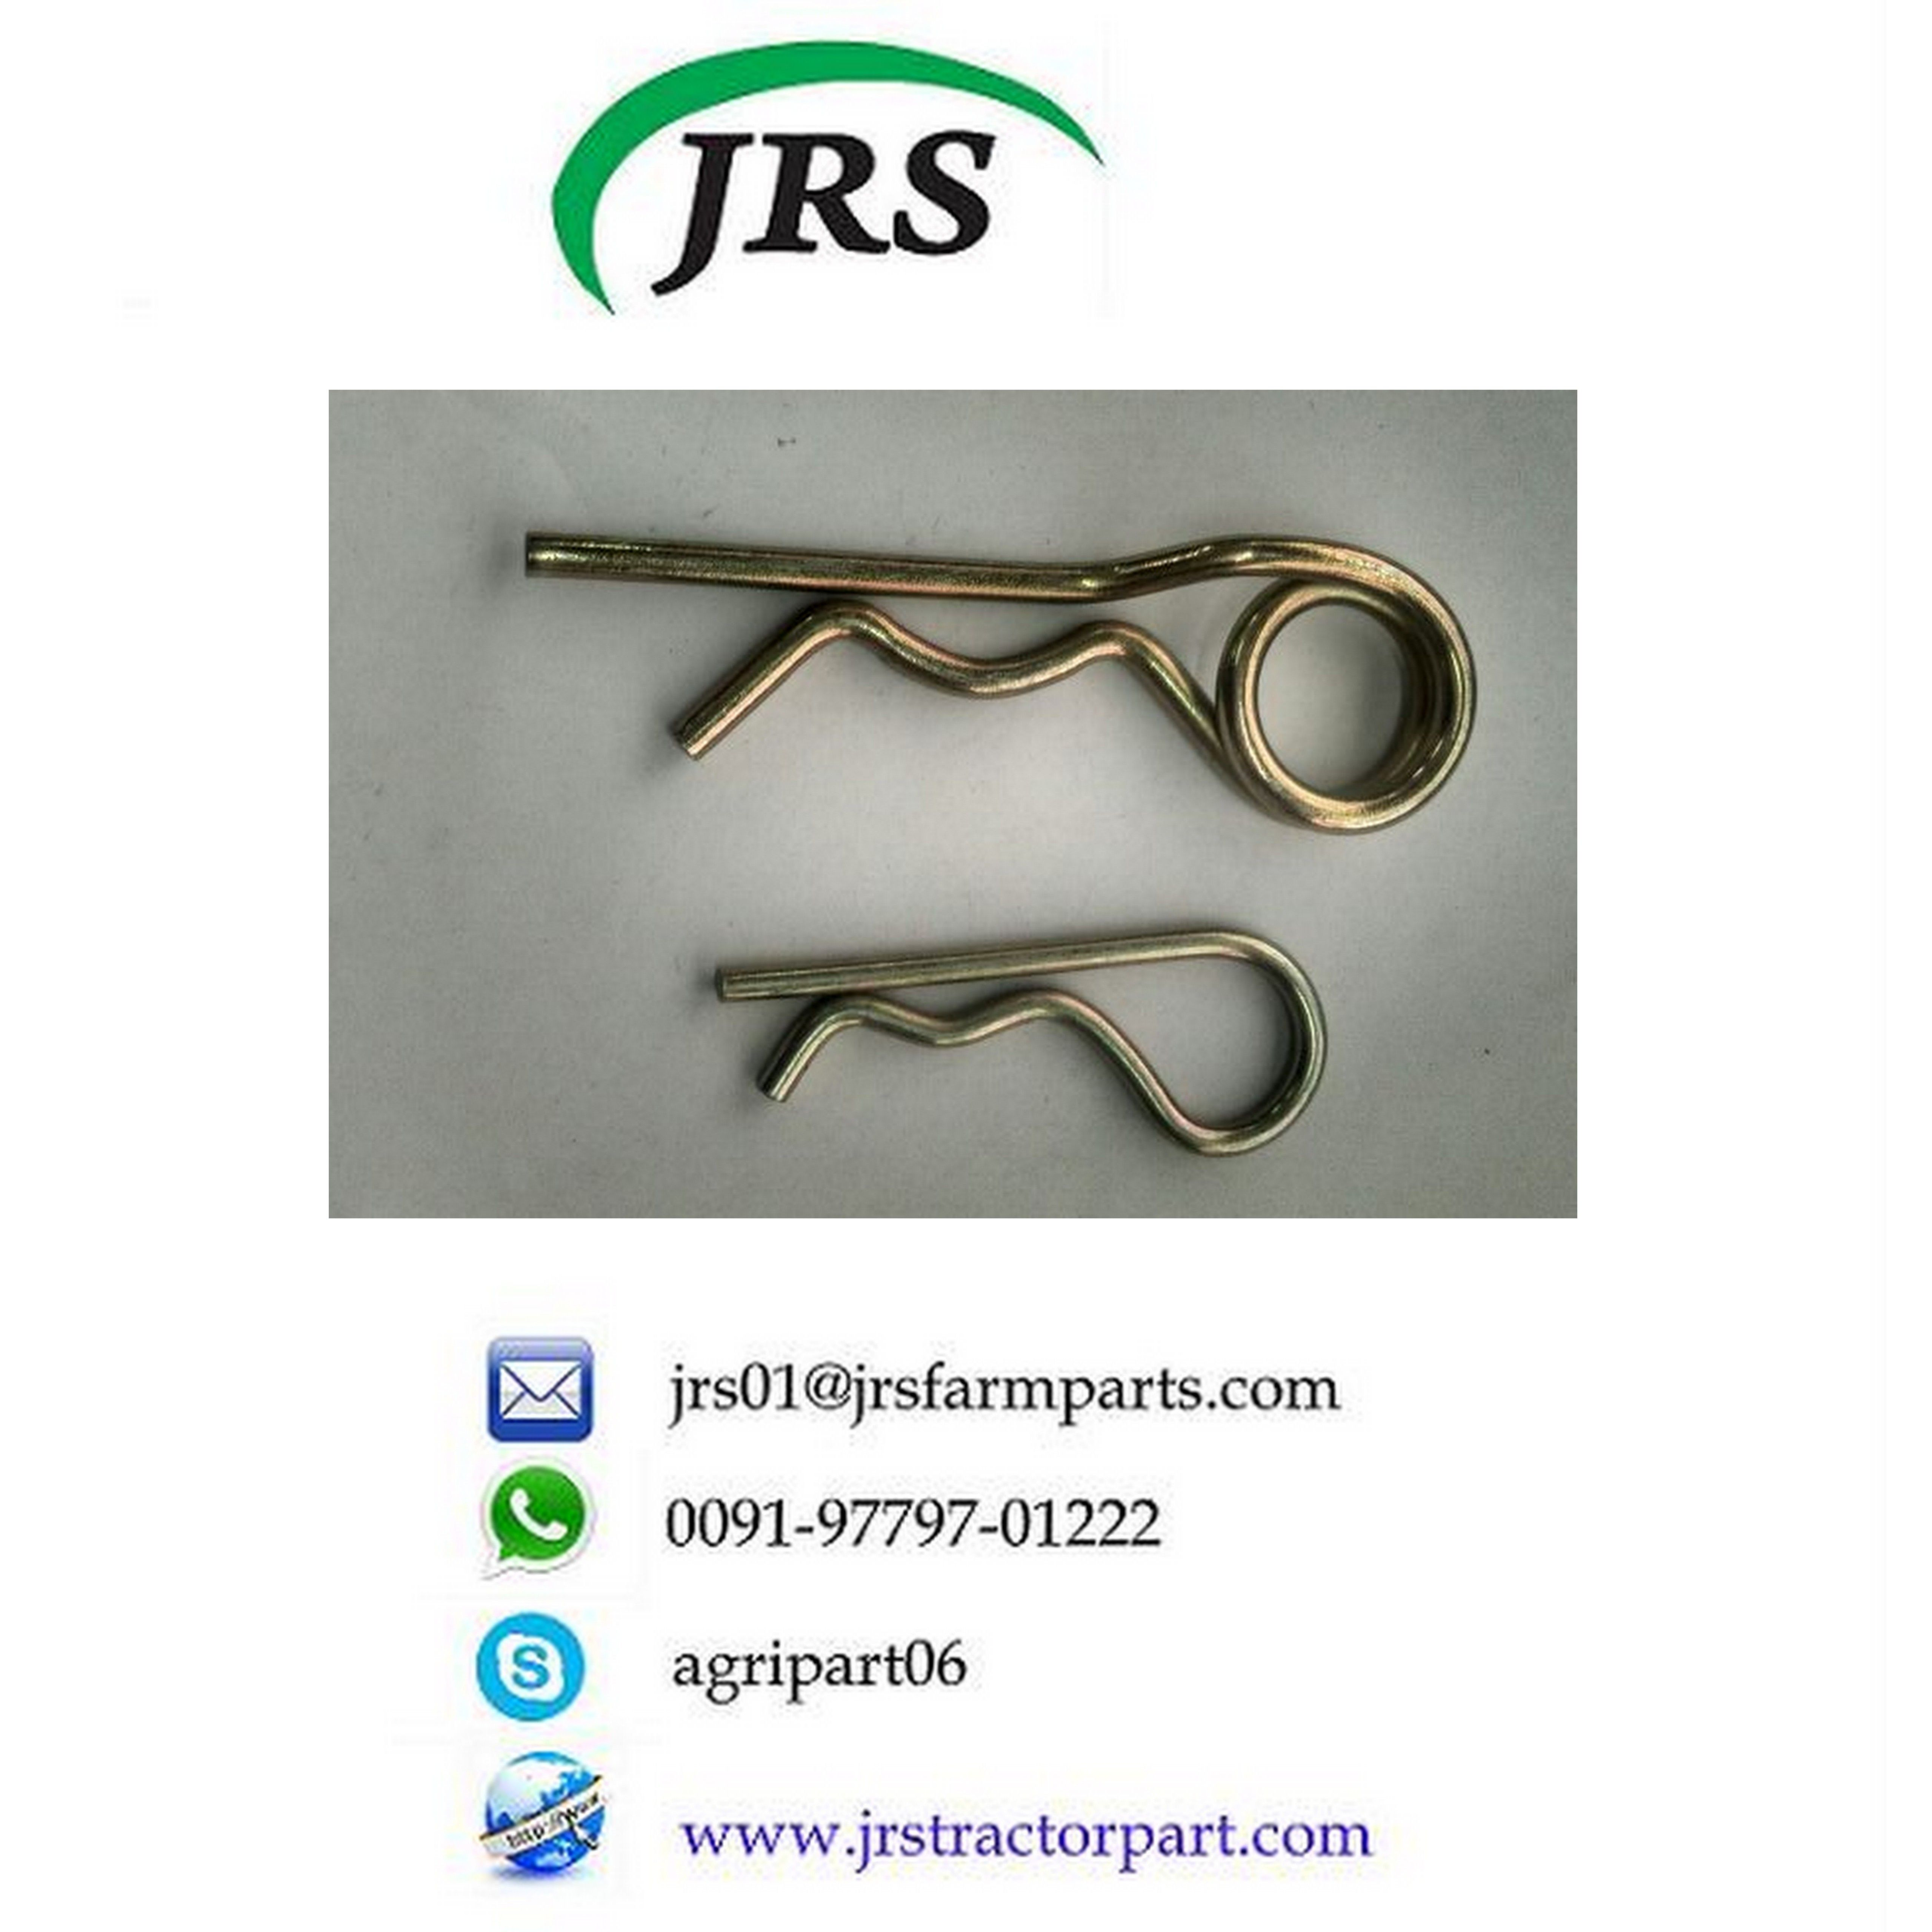 JRS brand in R pins manufacturer/supplier | Tractor Linkage Pins ...